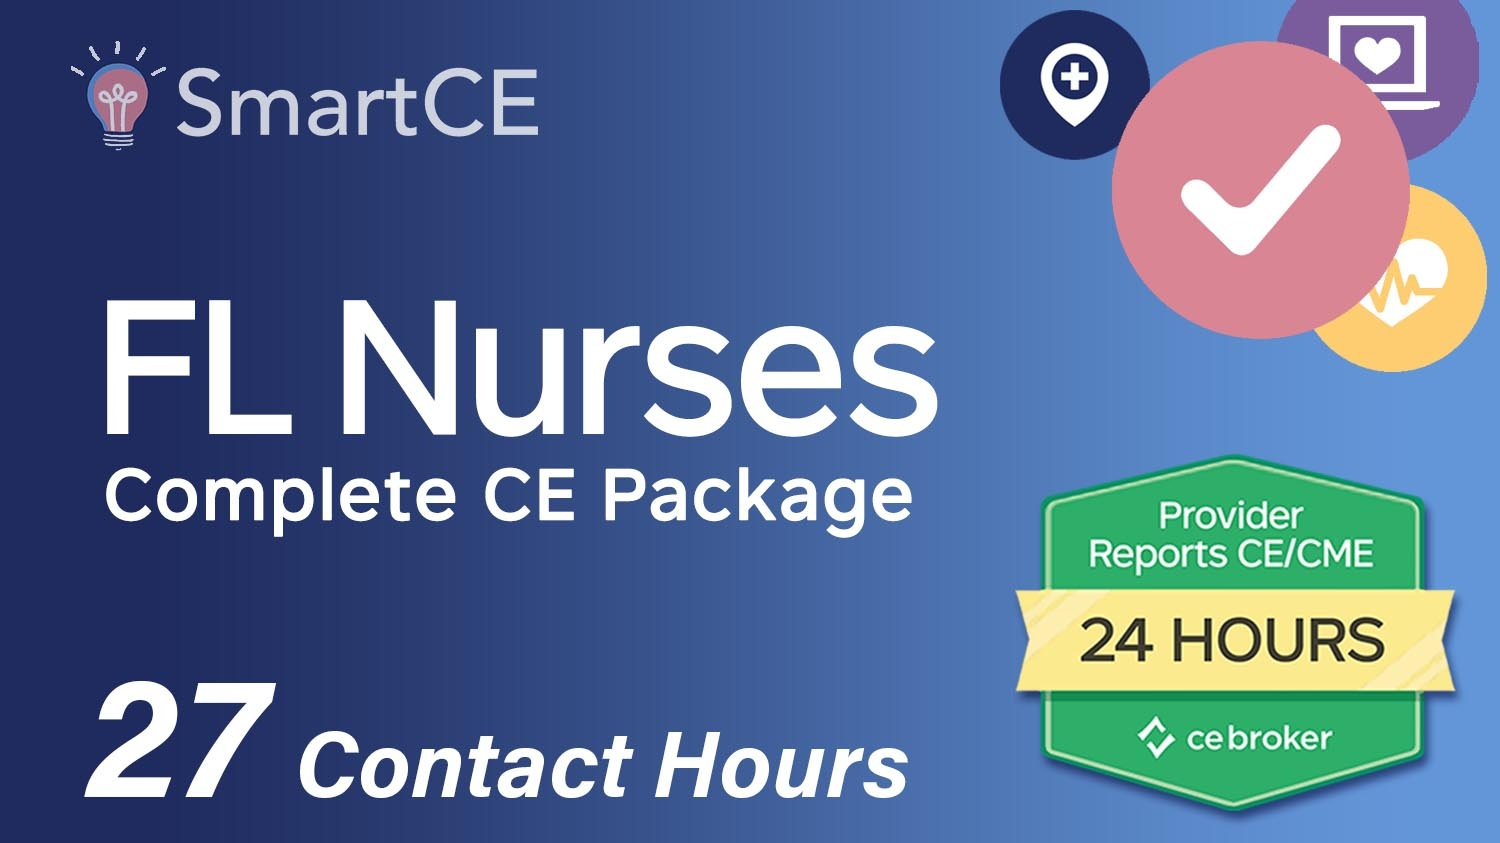 Continuing Education Package for Florida Nurses: 27 Contact Hours /20-619940/20-571431/20-605534/20-571425/20-577091/20-605530/20-581291/20-581337/20-581325/20-576927/20-605536